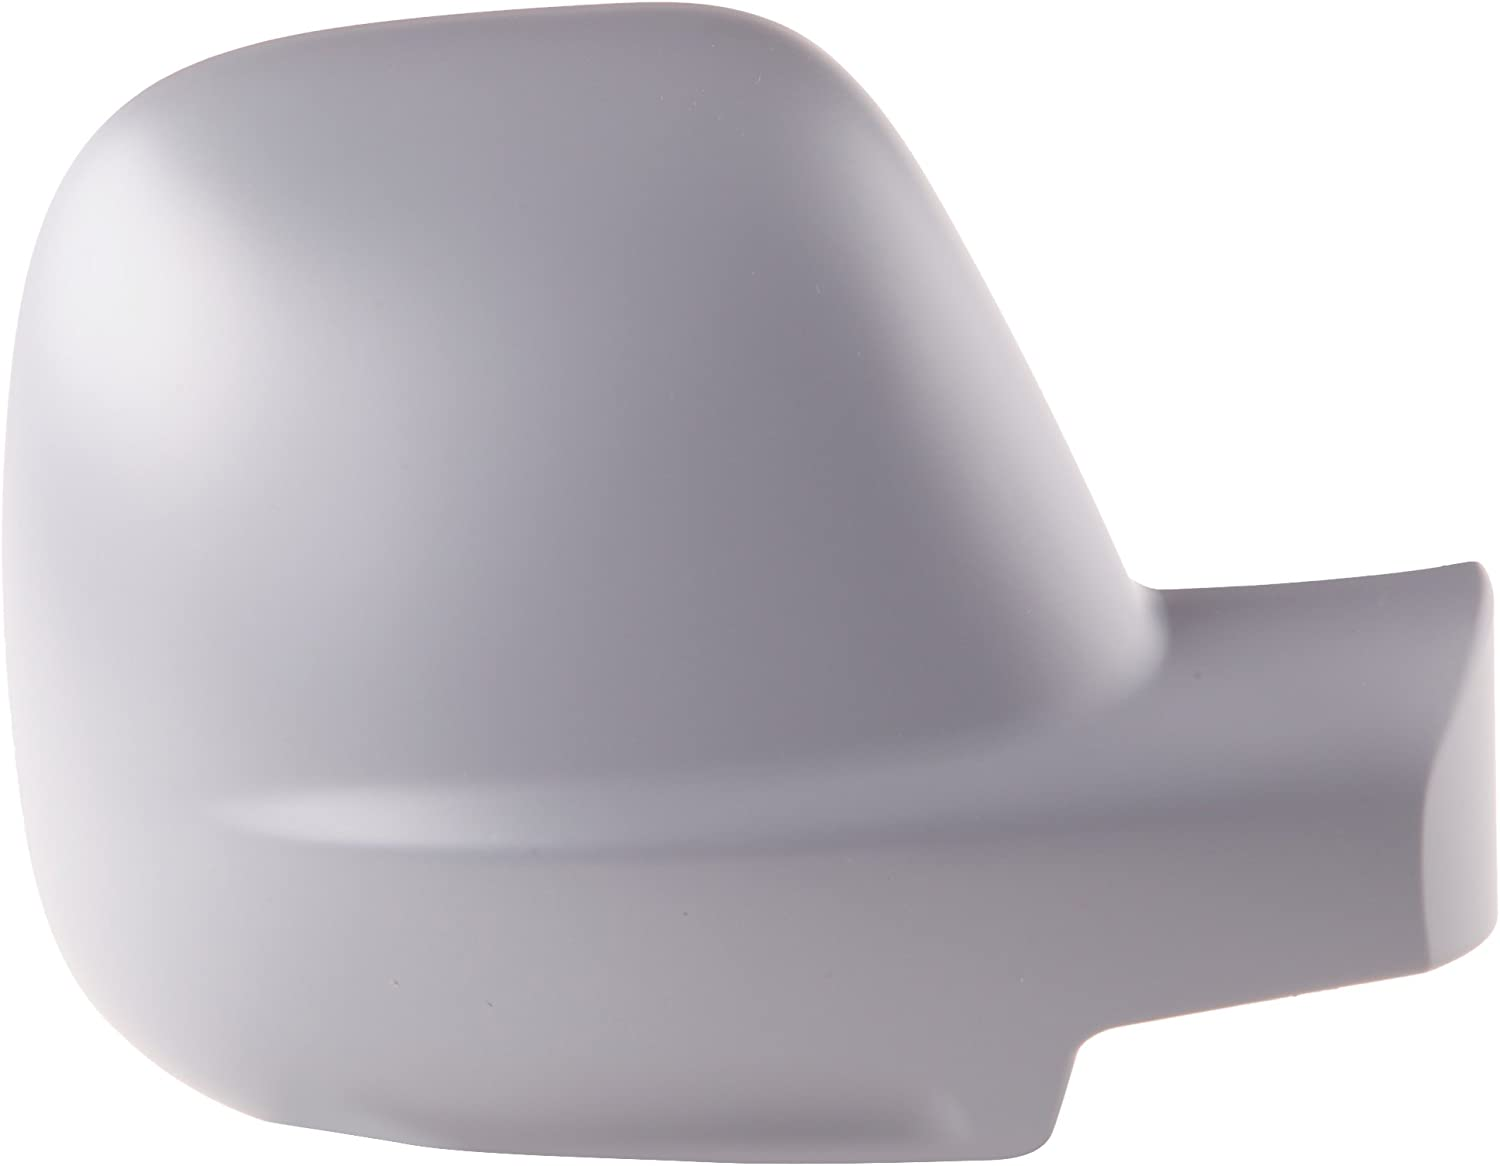 Summit SRMC-172PG Car Door Mirror Cover,Right Hand Side,in Grey Primer